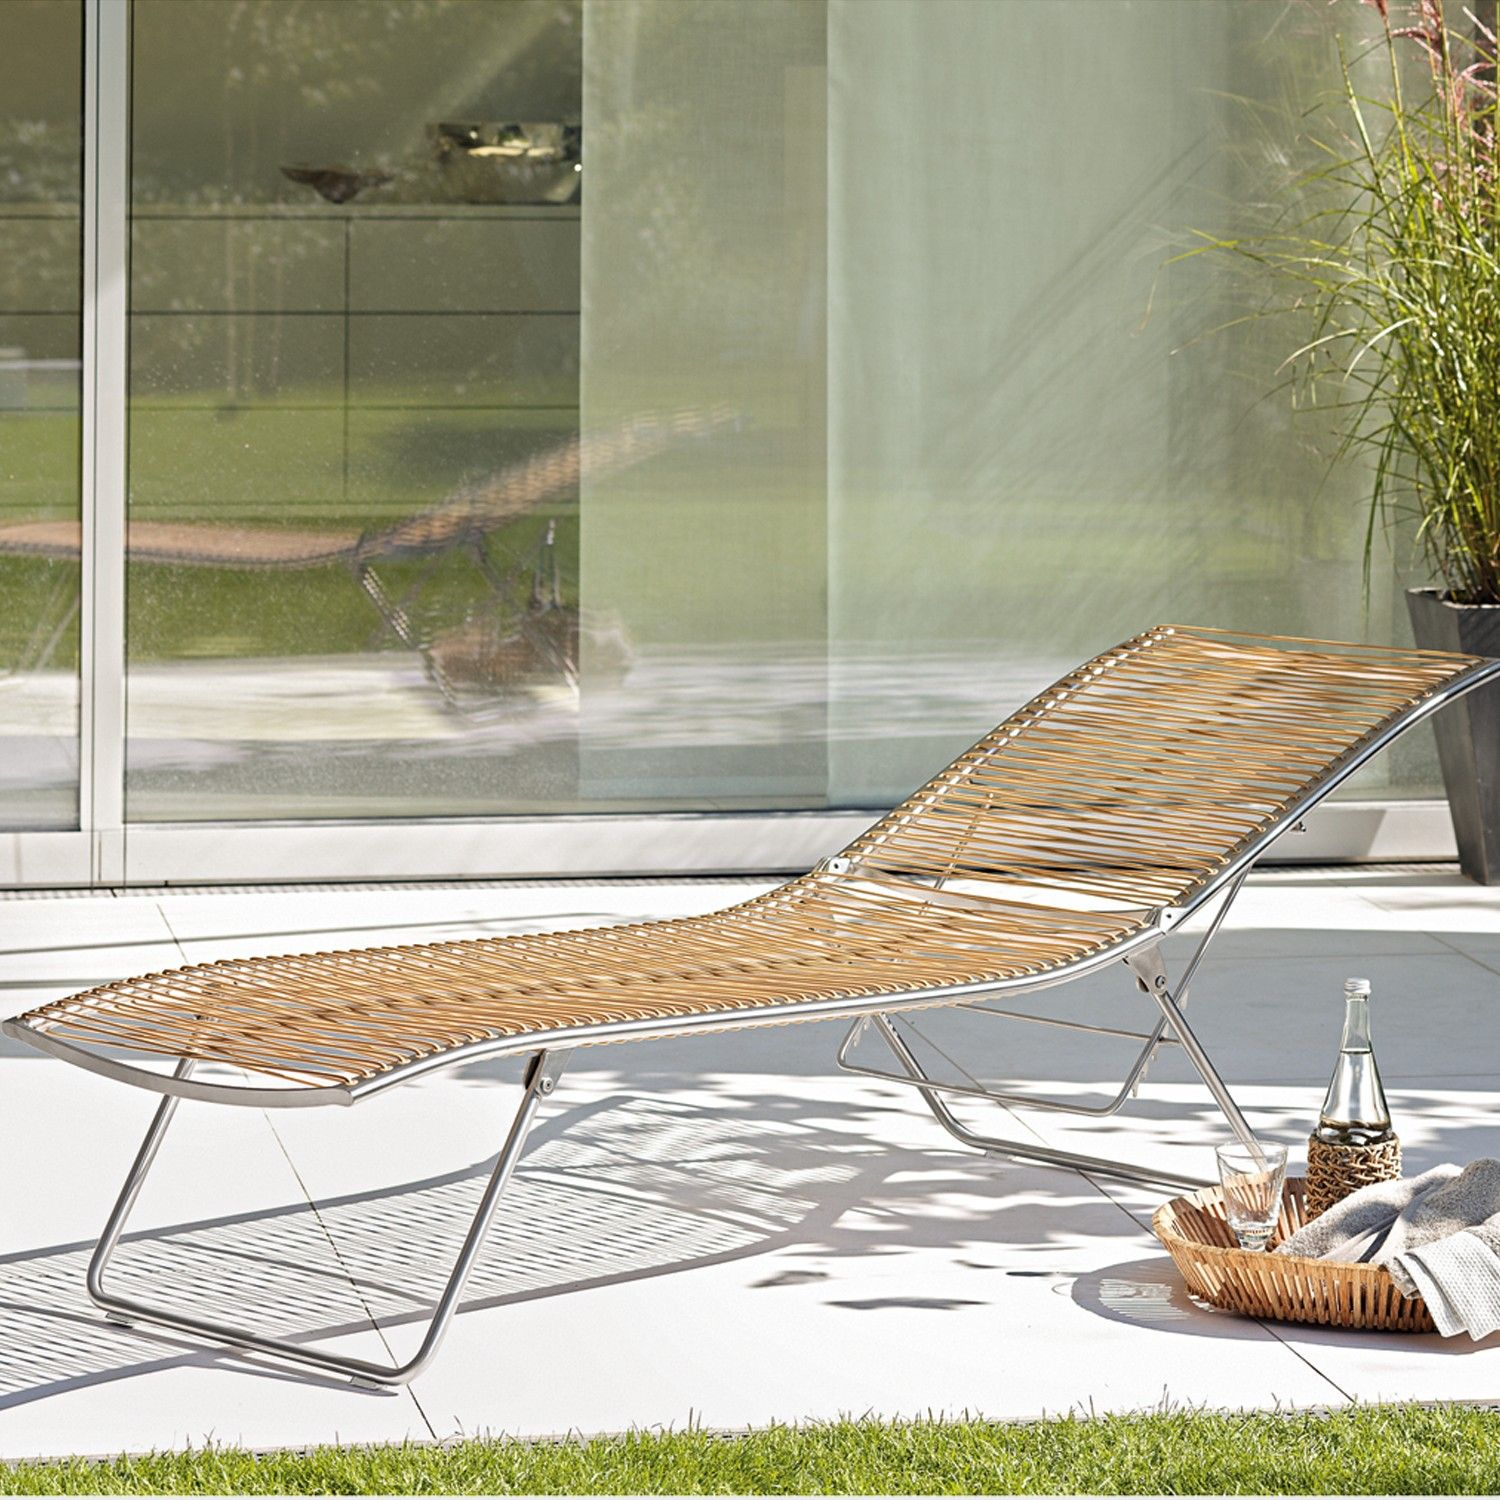 Garpa Liege Garpa Pan Lounger Garten Pinterest Side Yards And Gardens